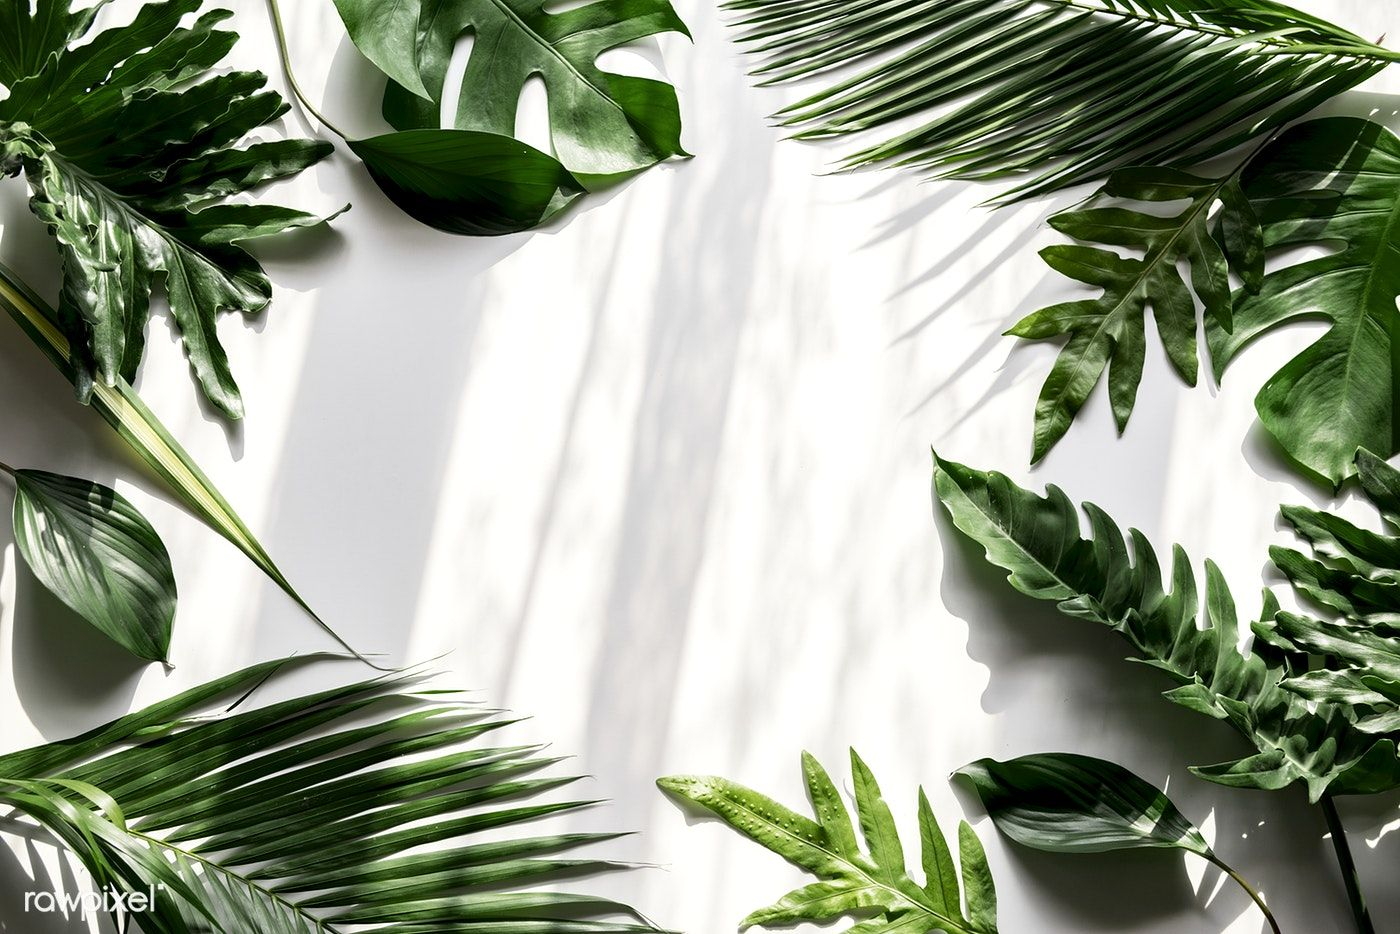 Tropical Green Leaves On White Background Premium Image By Rawpixel Com White Background Plant Wallpaper White Background Photo Tropics jungle tropical rainforest, green coconut leaves, watercolor leaves, leaf, plant stem png. tropical green leaves on white